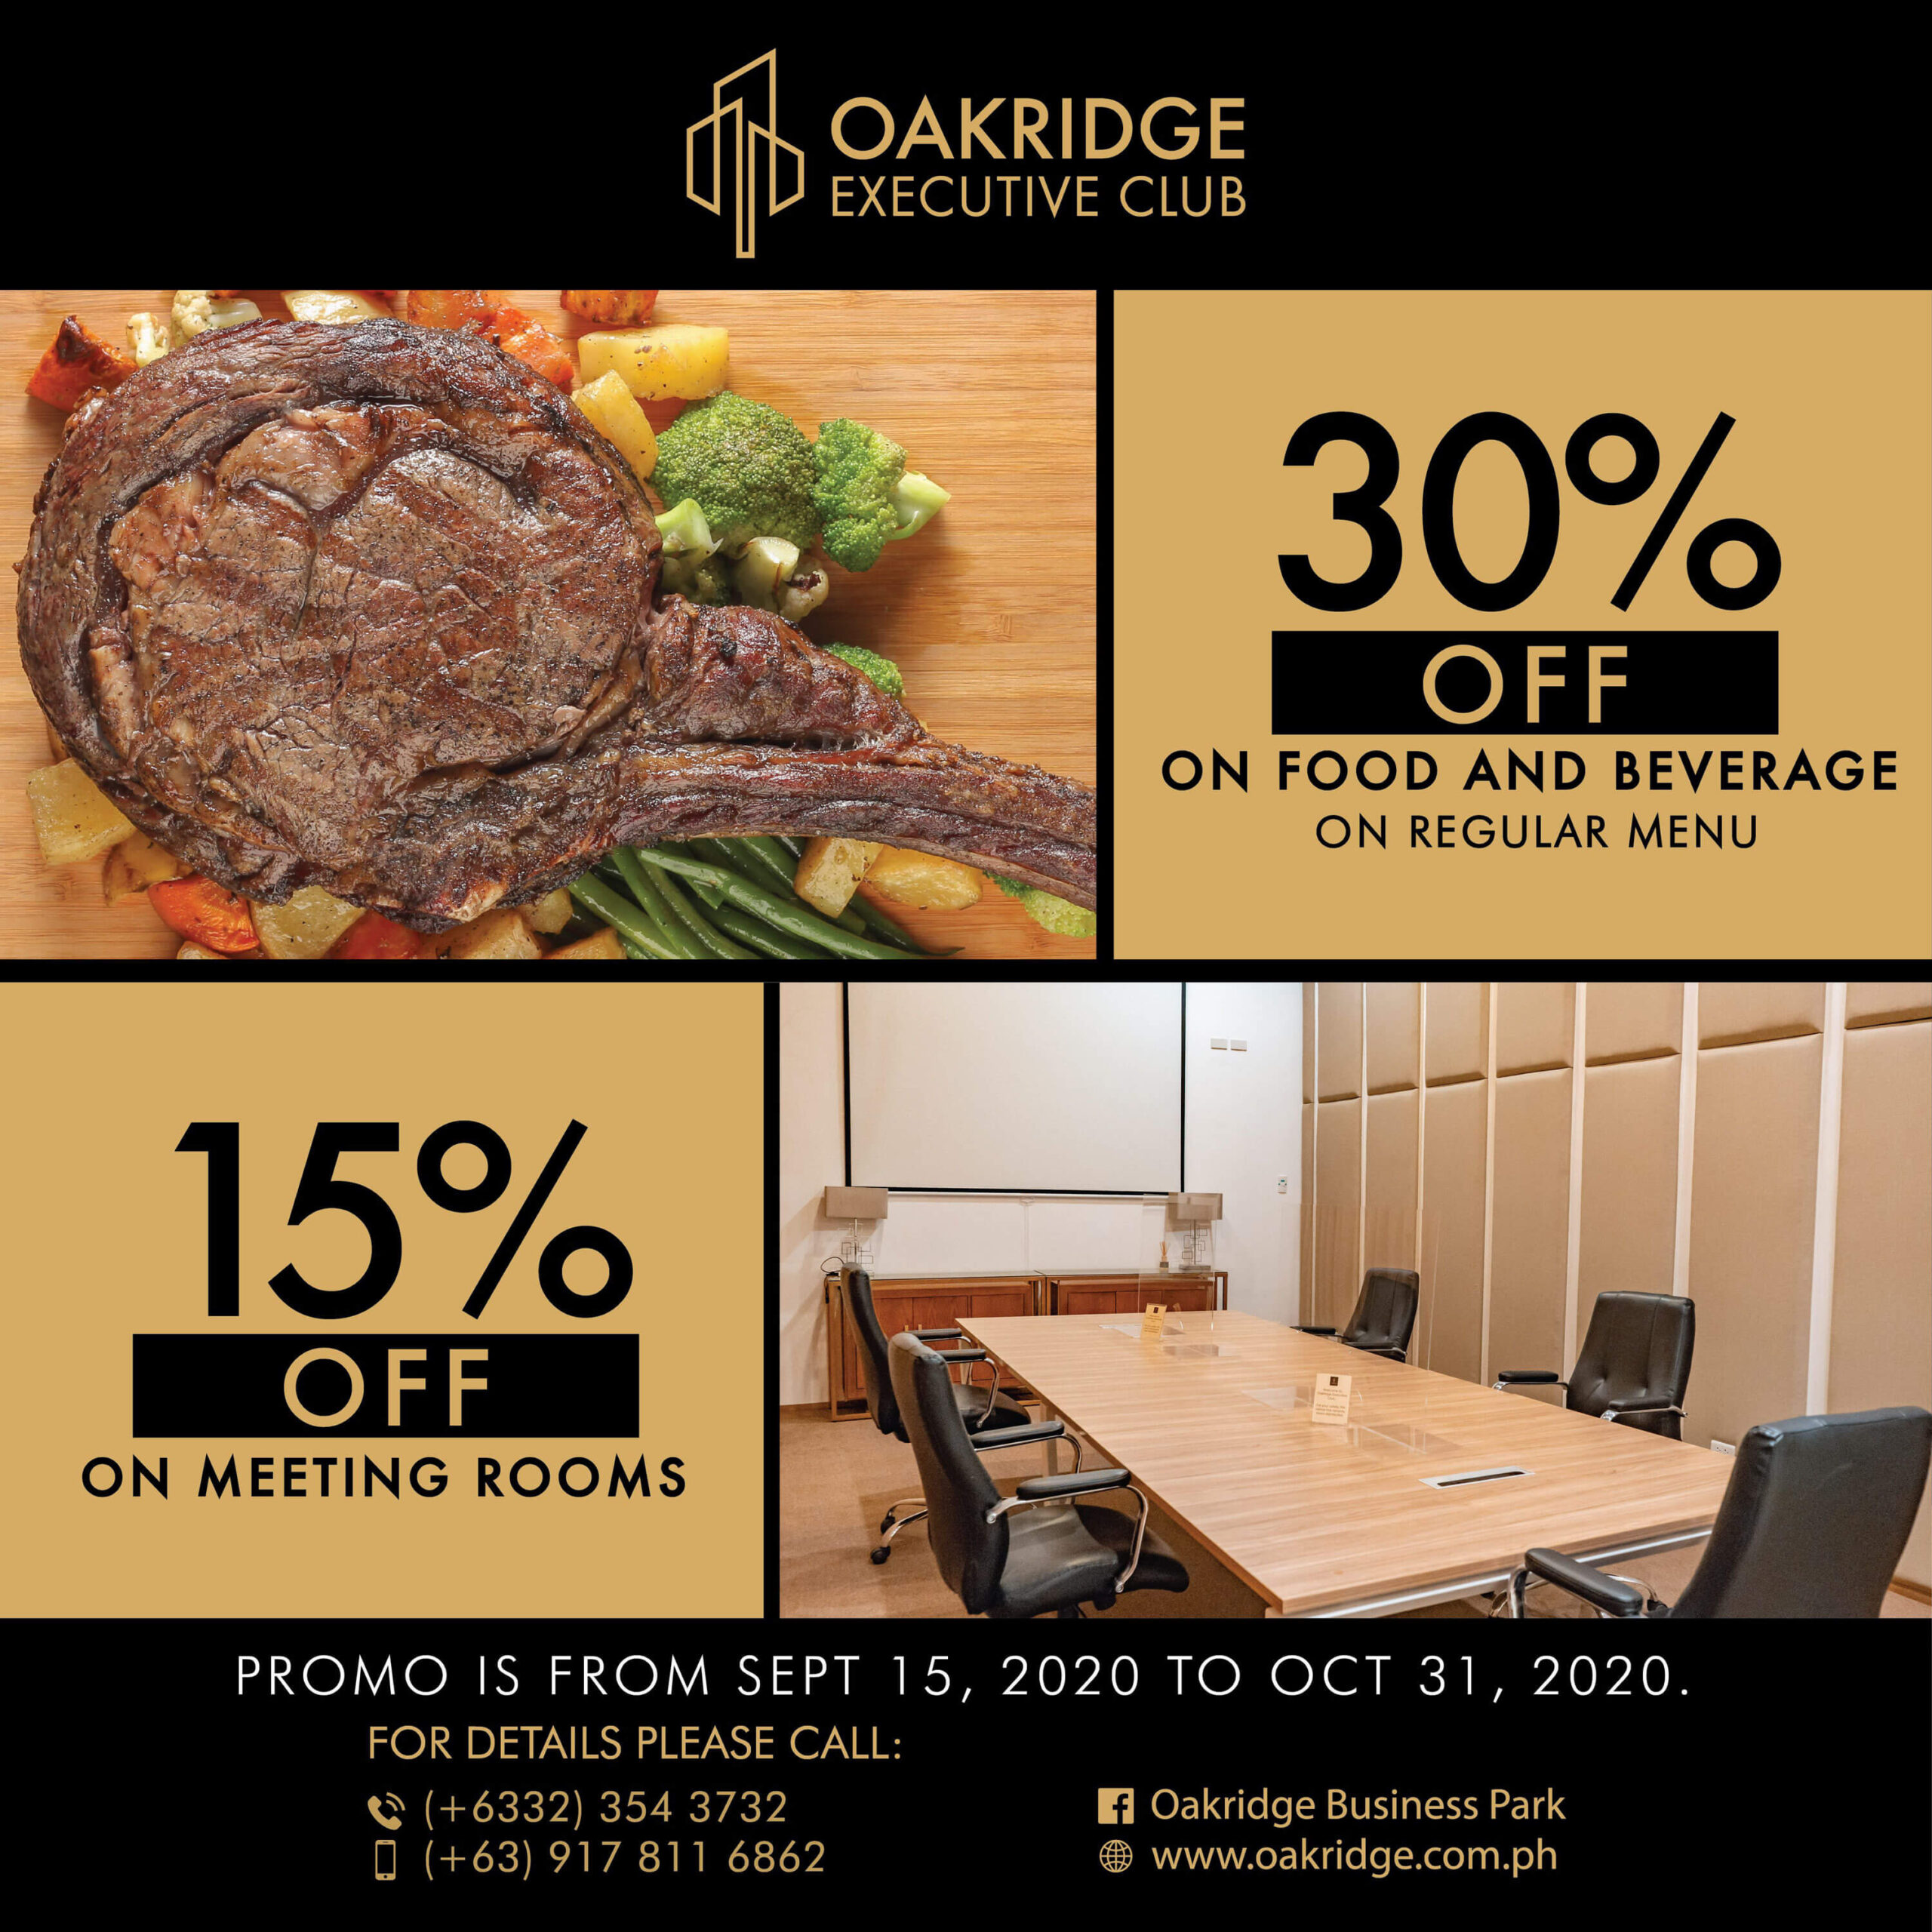 Oakridge Executive Club offers 30% discount on food, beverage; 15% off on meeting rooms